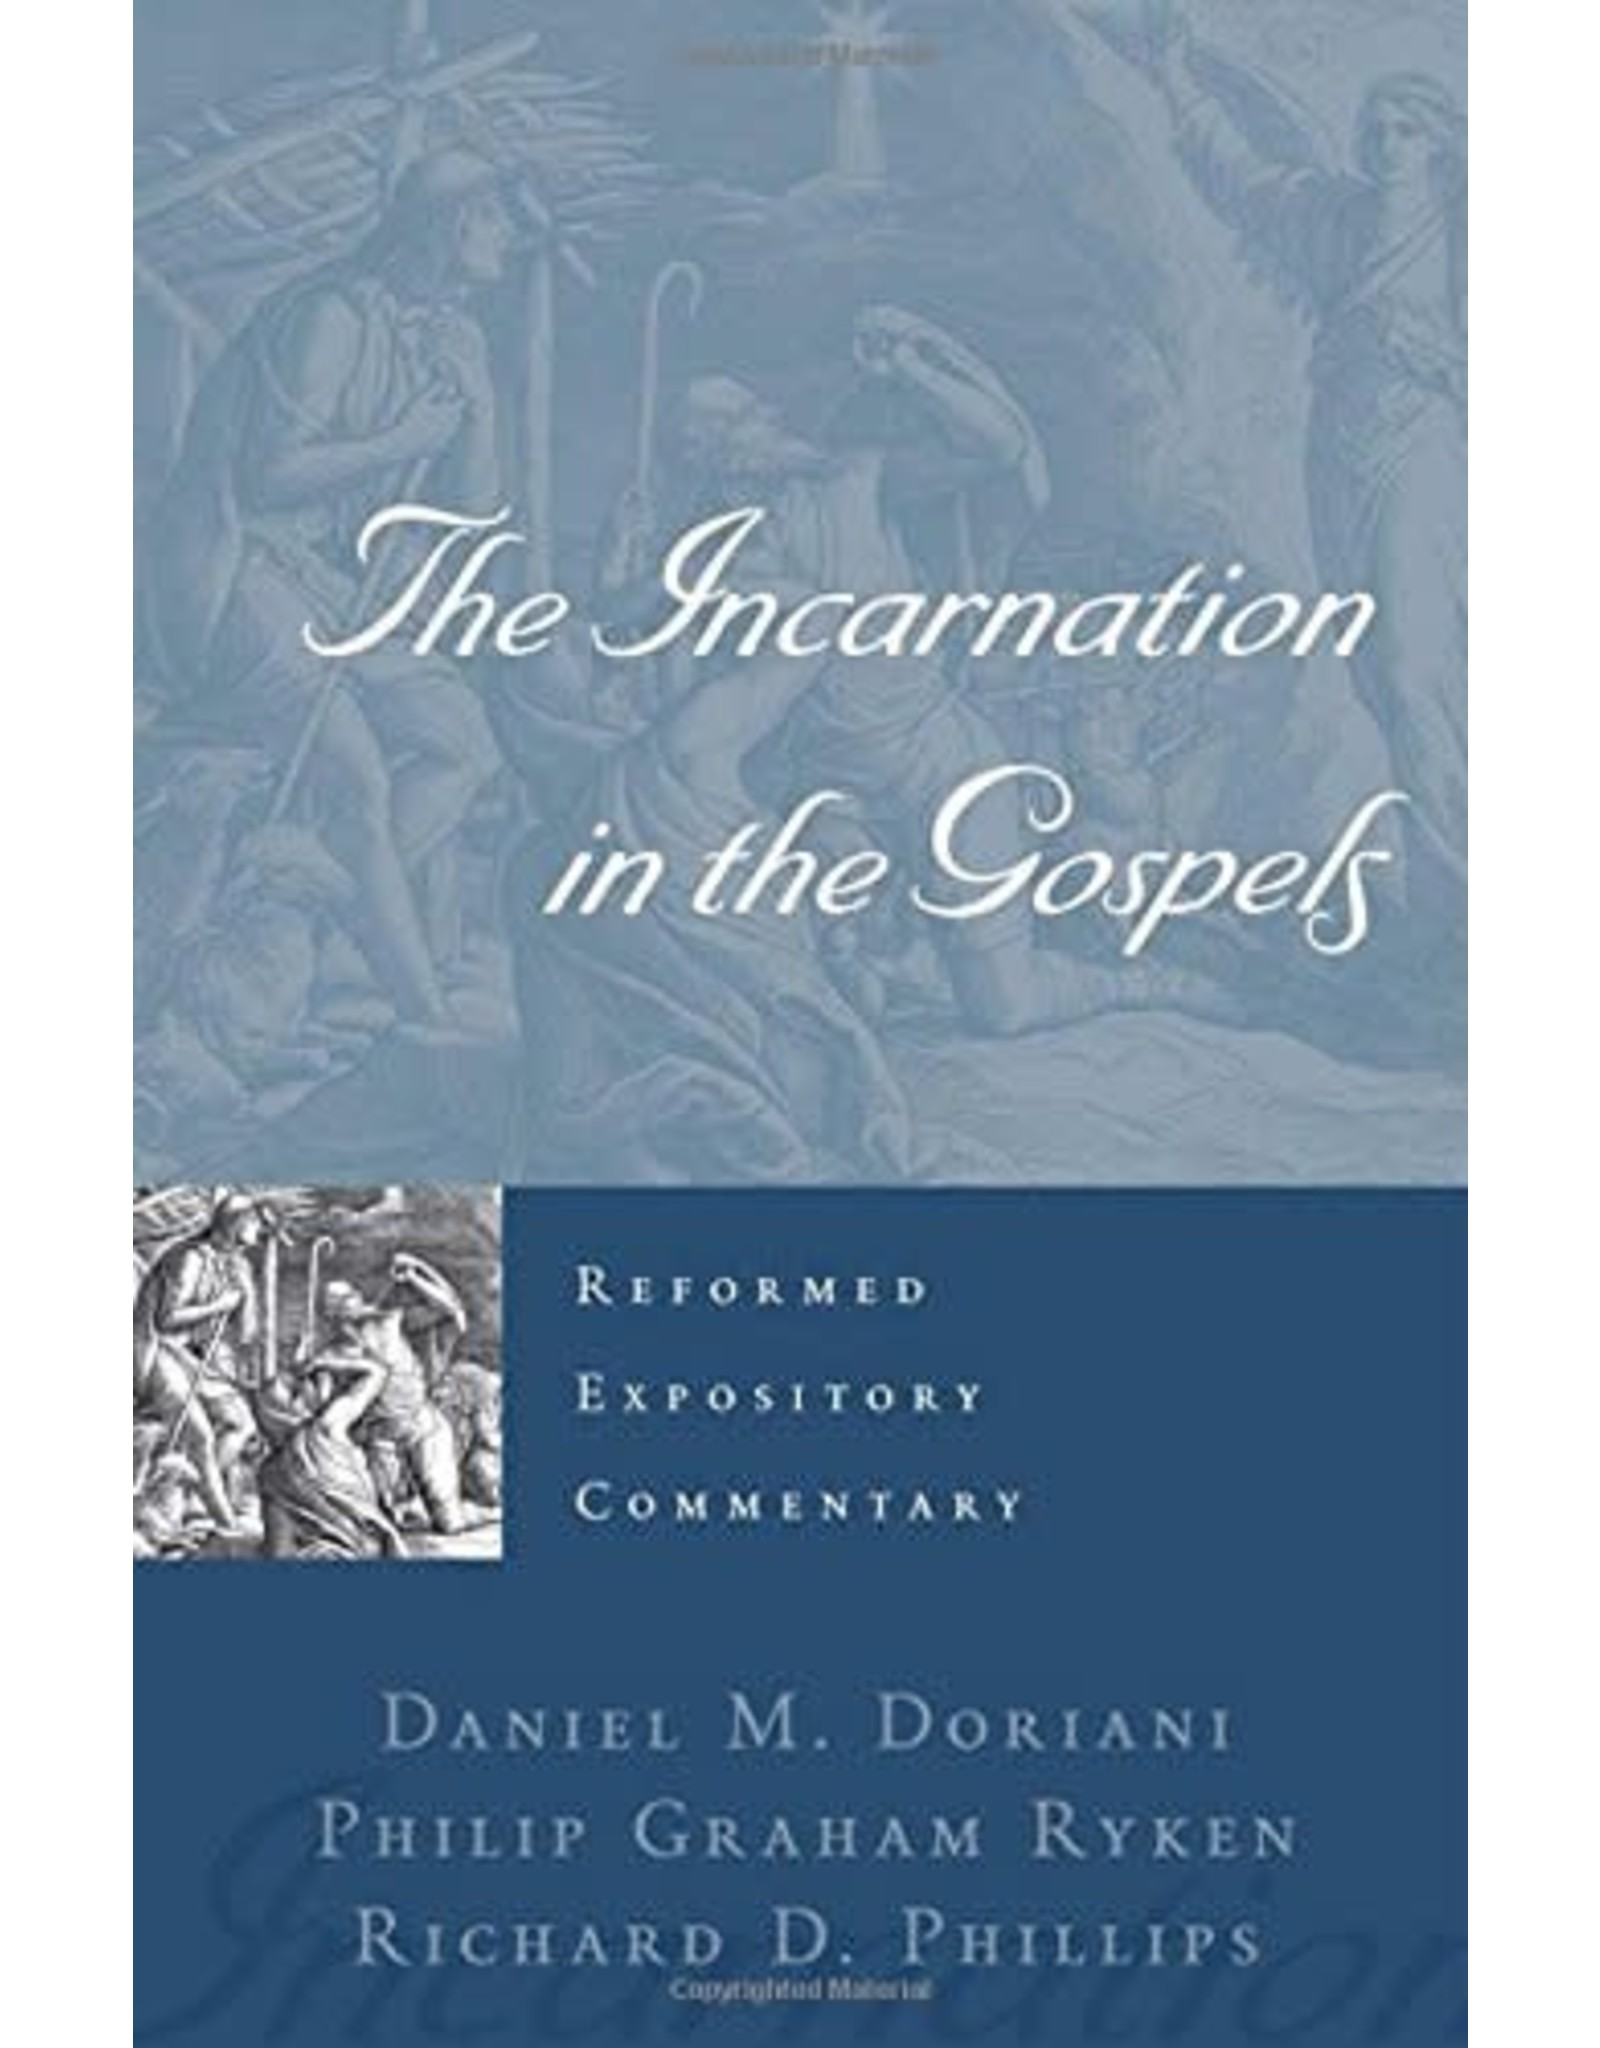 The Incarnation in the Gospels